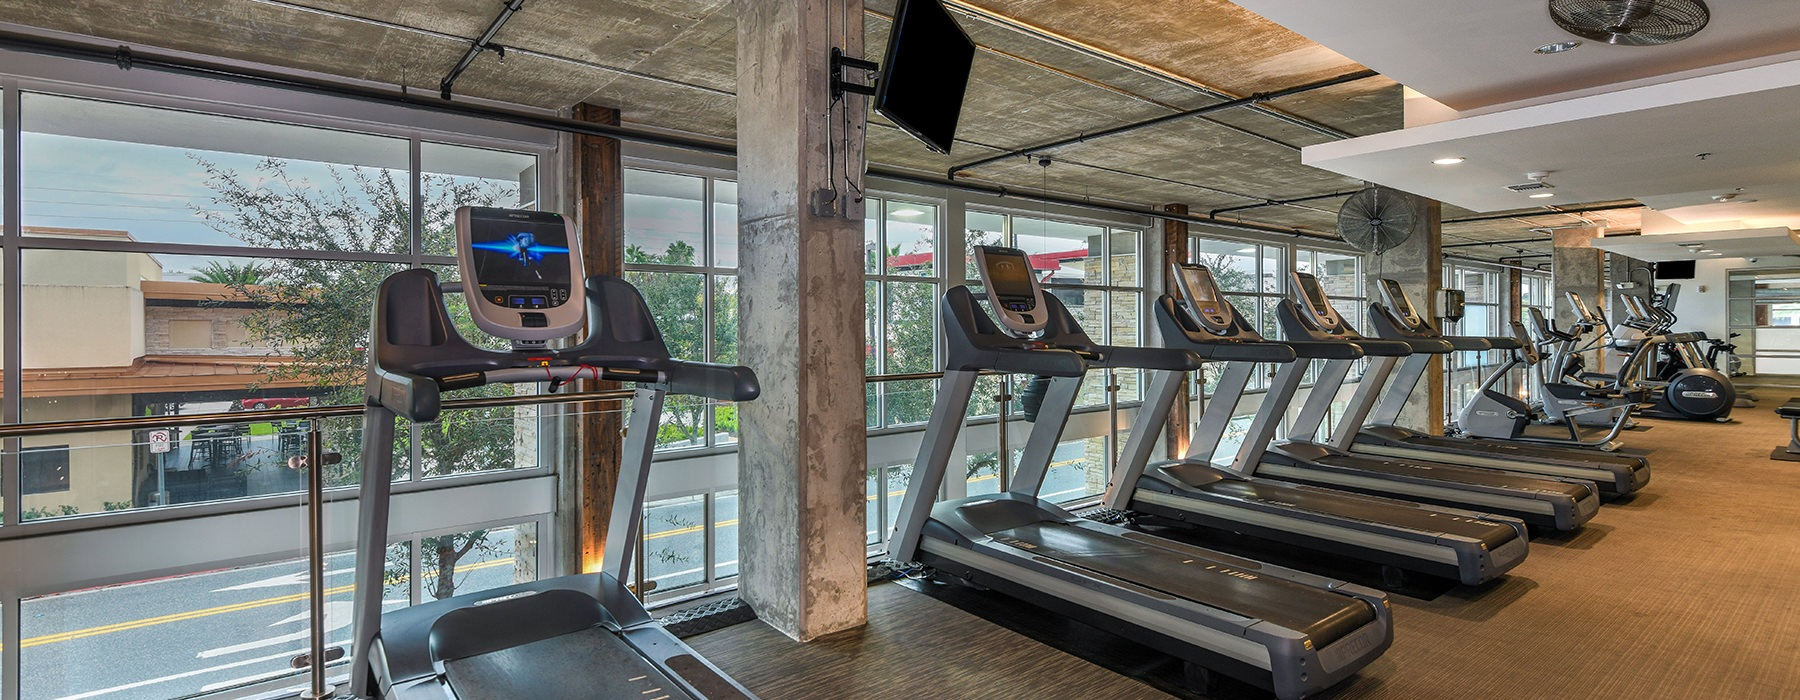 Fitness Area with treadmills dumbbells and machines